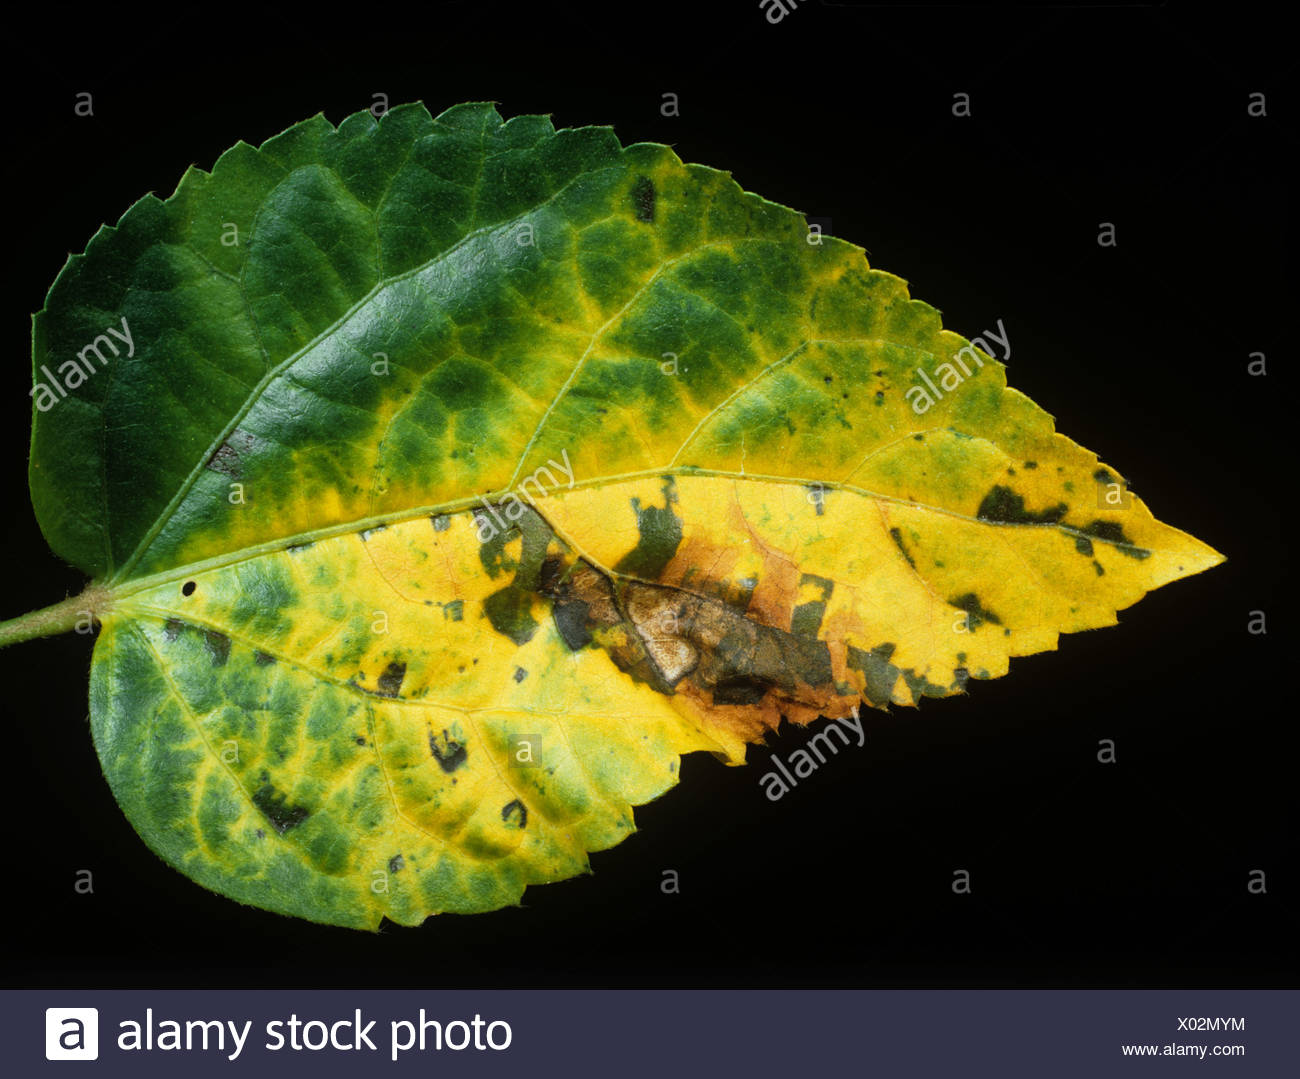 Bacterial Leaf Spot Xanthomonas Malvacearum On Hibiscus Leaf Stock